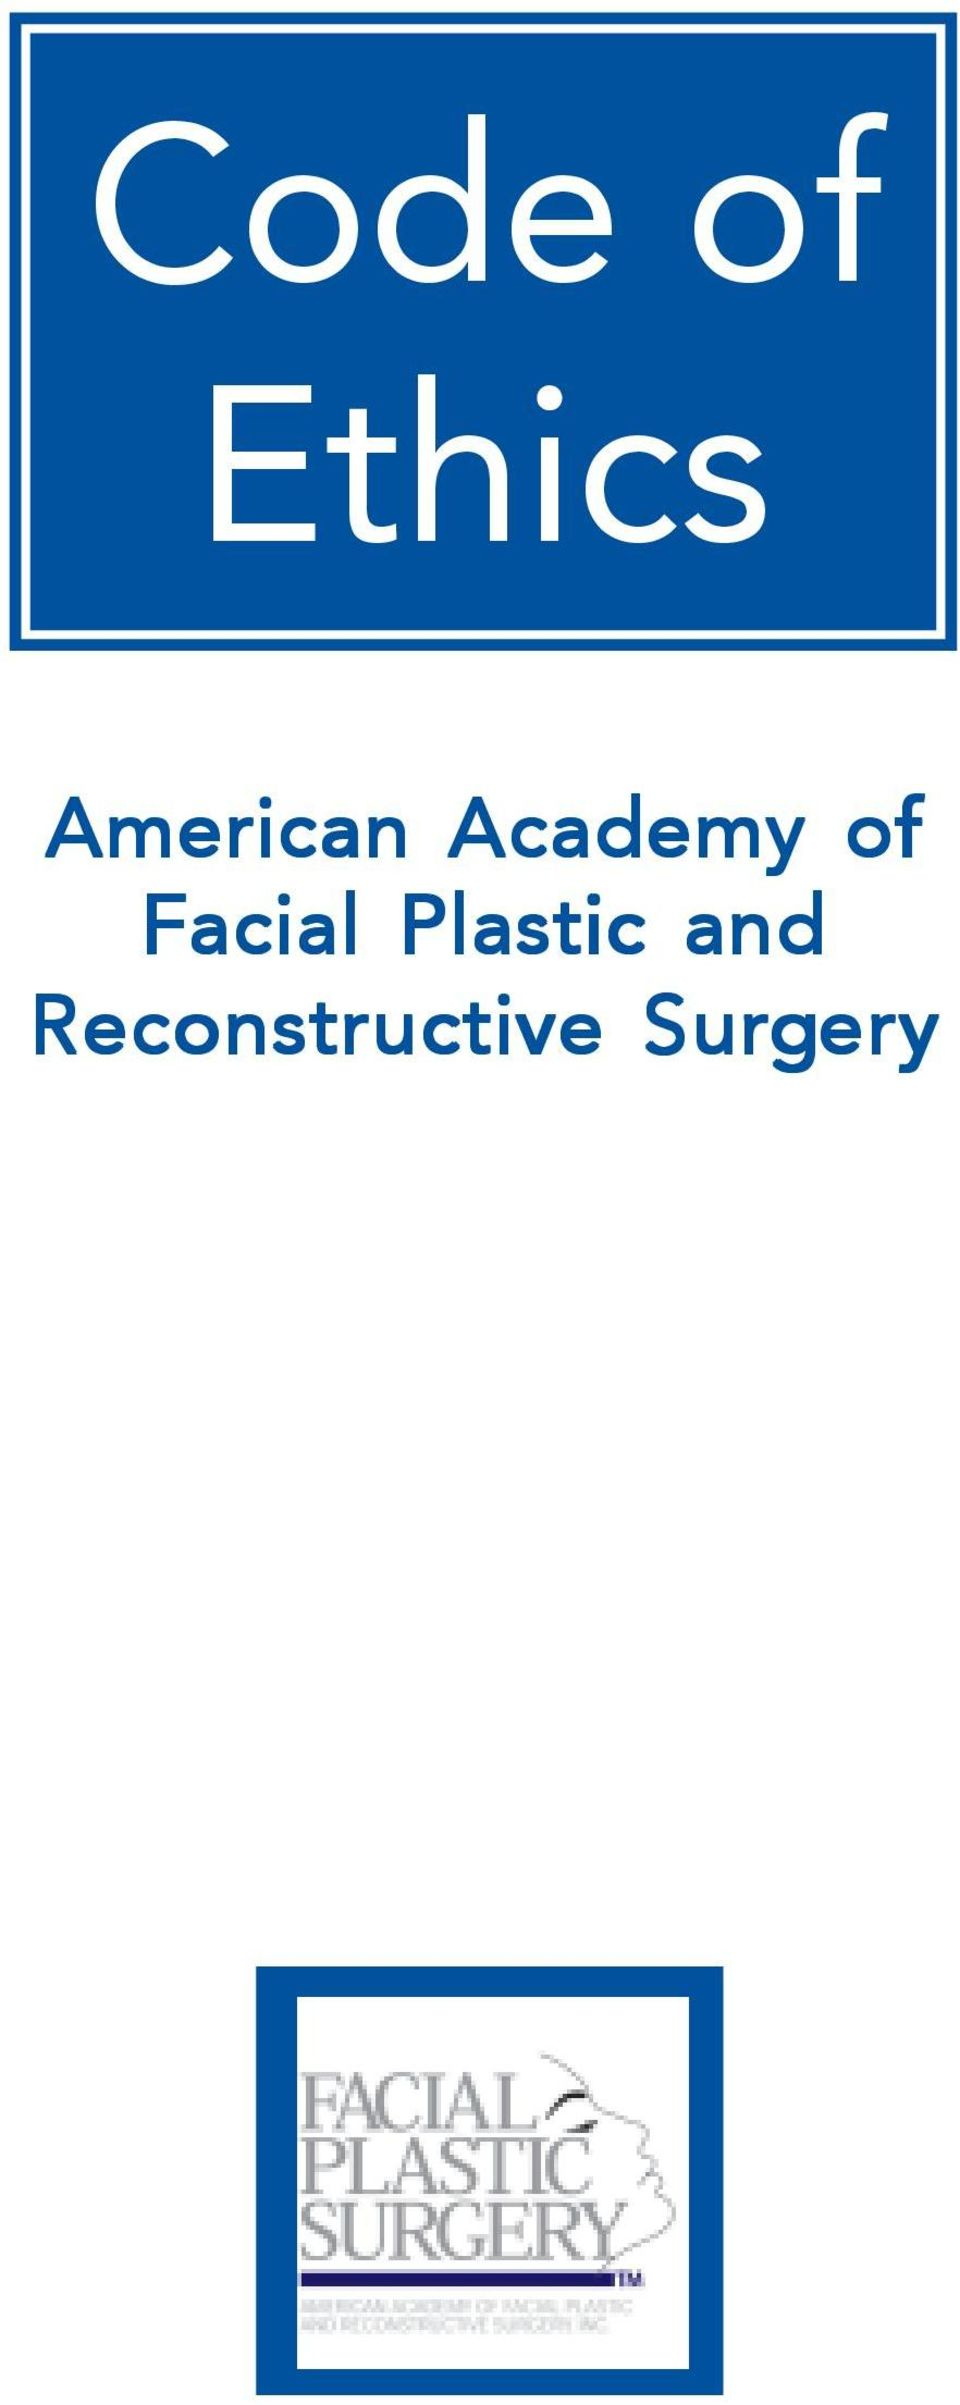 Facial Plastic and